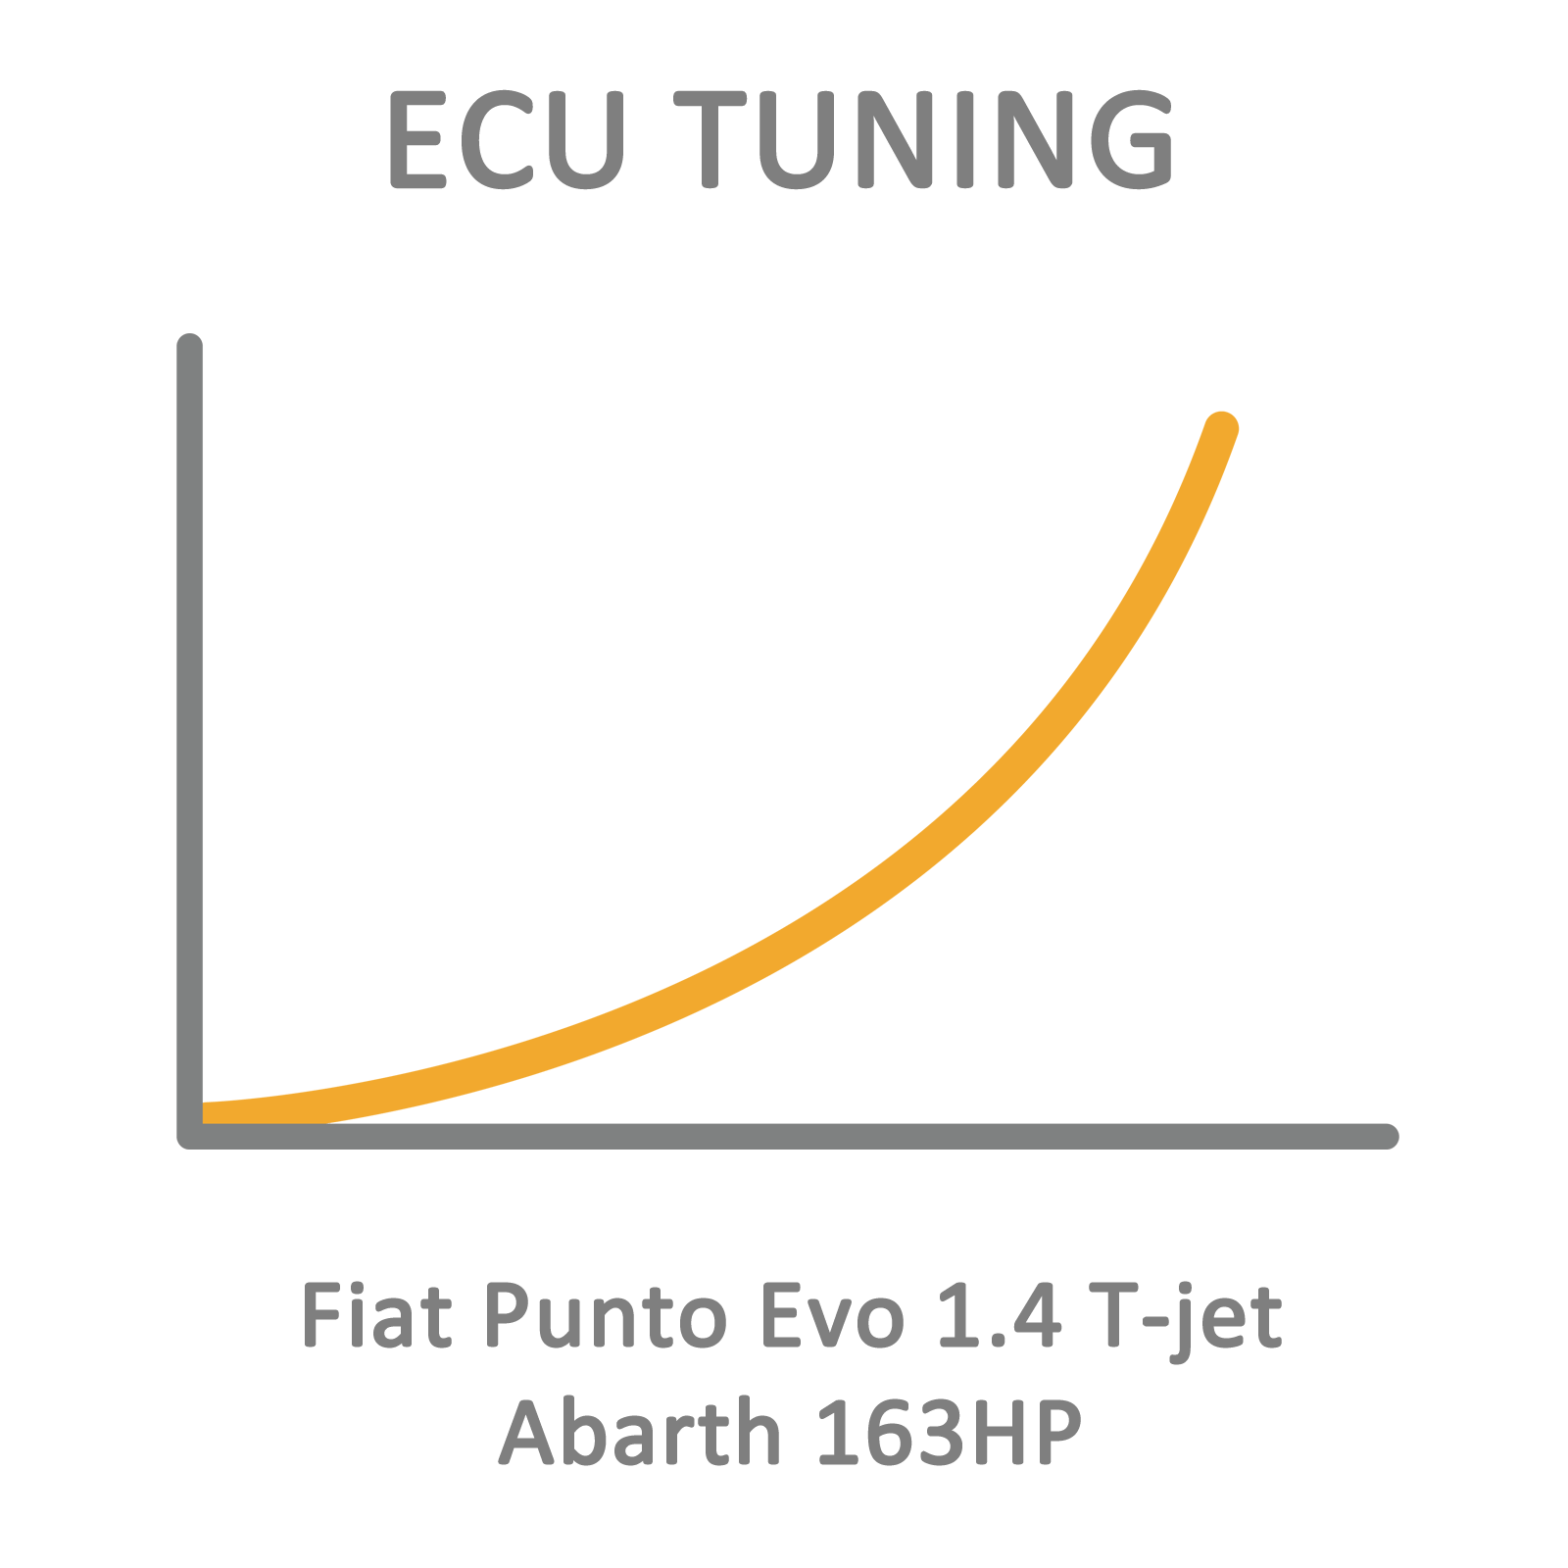 Fiat Punto Evo 1.4 T-jet Abarth 163HP ECU Tuning Remapping